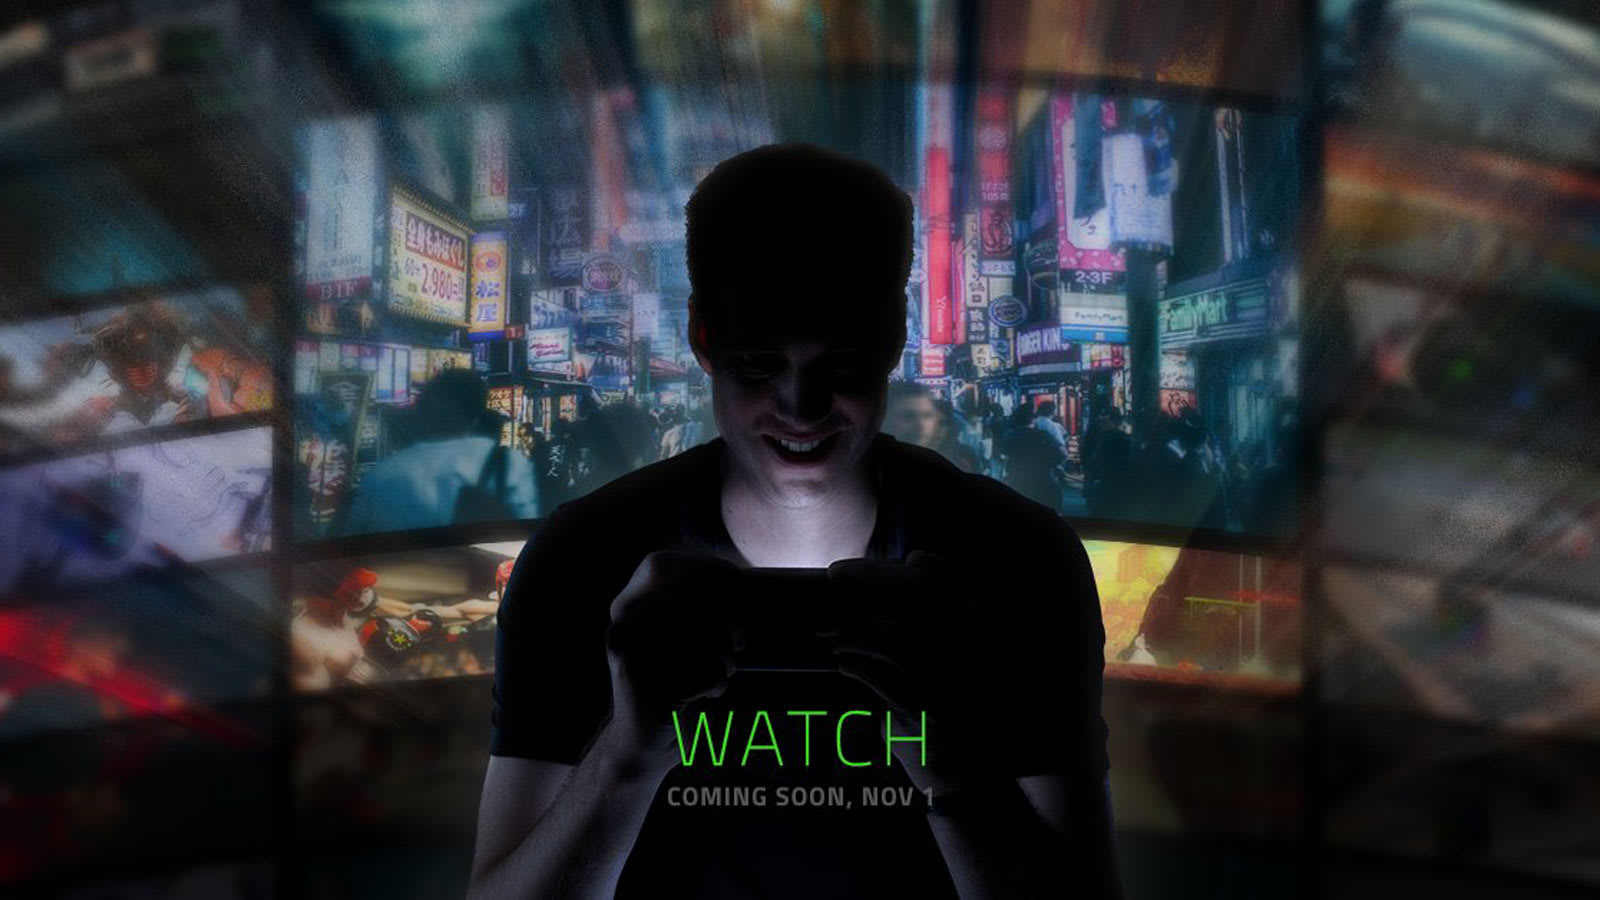 Razer will debut its first smartphone on November 1st